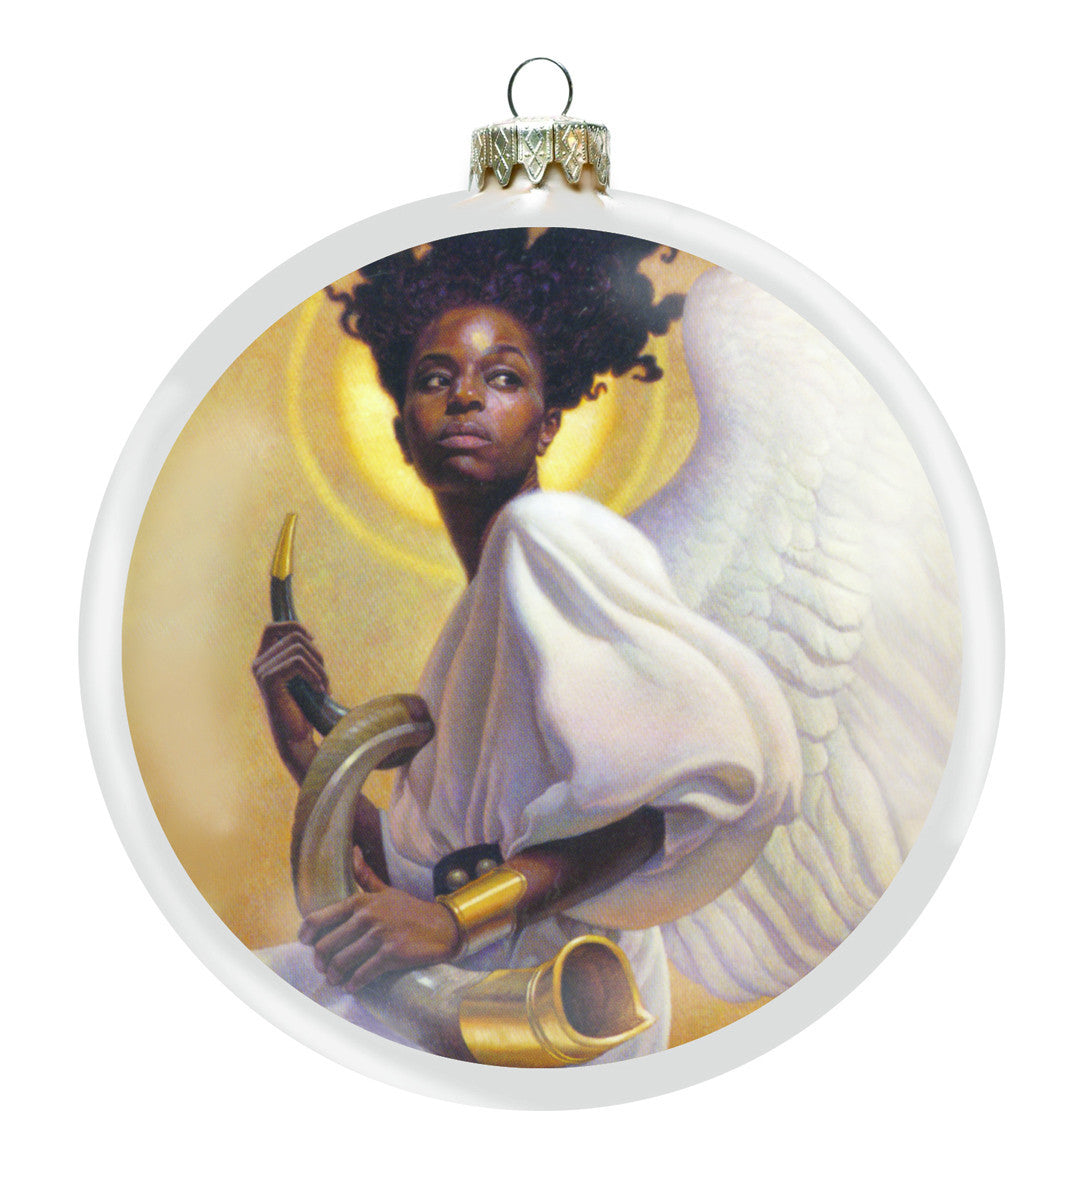 Preparing to Sound the Alarm Christmas Ornament by Thomas Blackshear (Front)